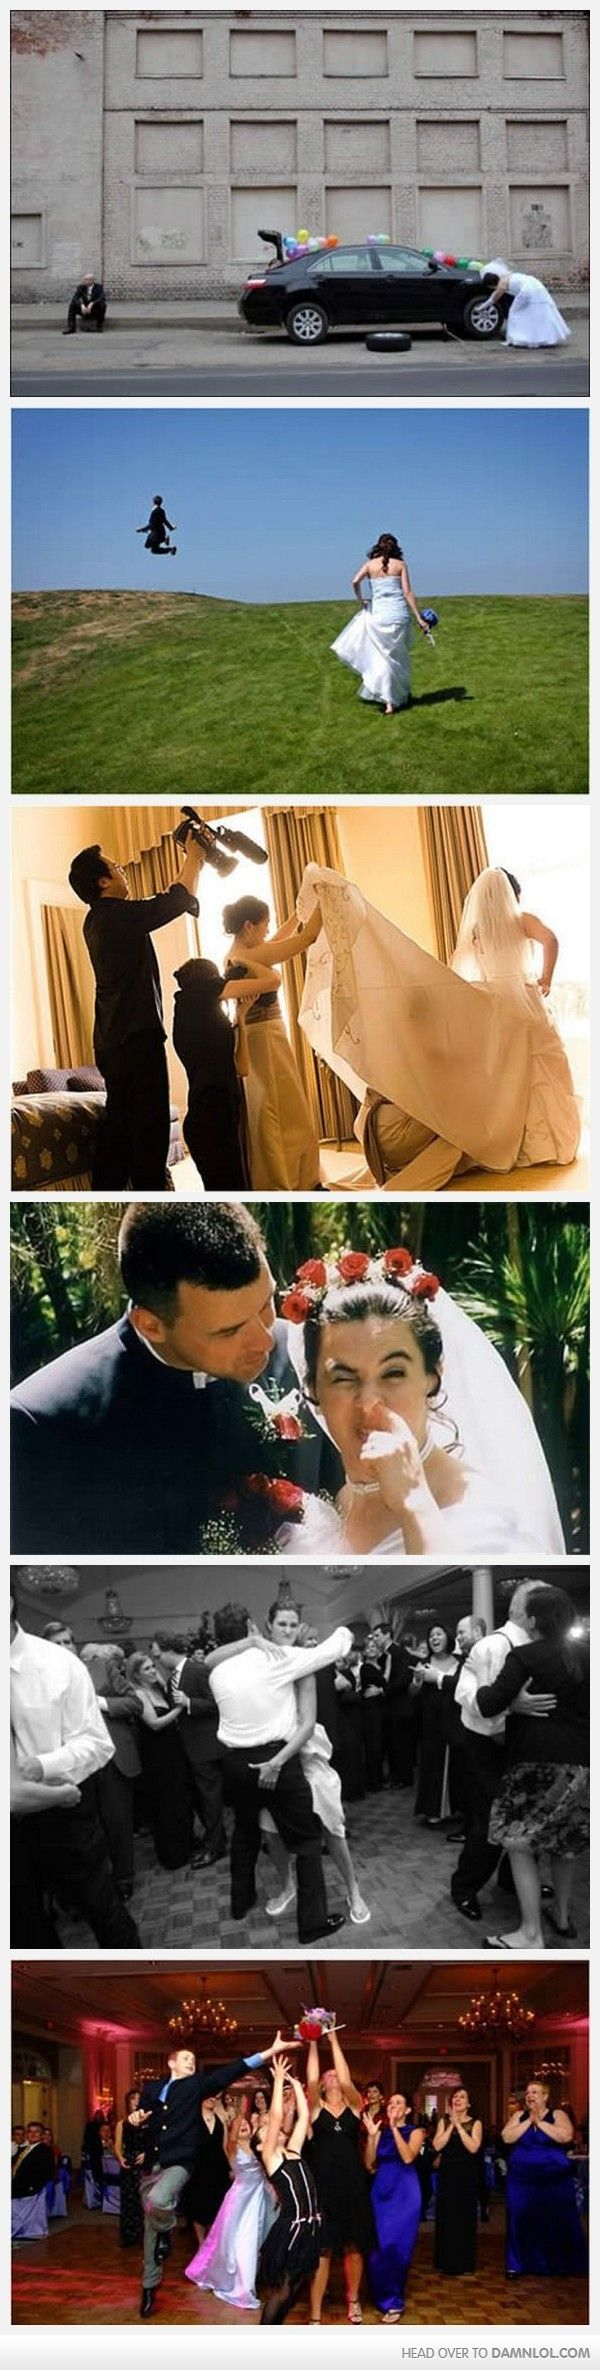 That'd be me in the first photo. haha. Coz I'm a mechanics daughter :) The other wedding photo fails are pretty bad tho lols